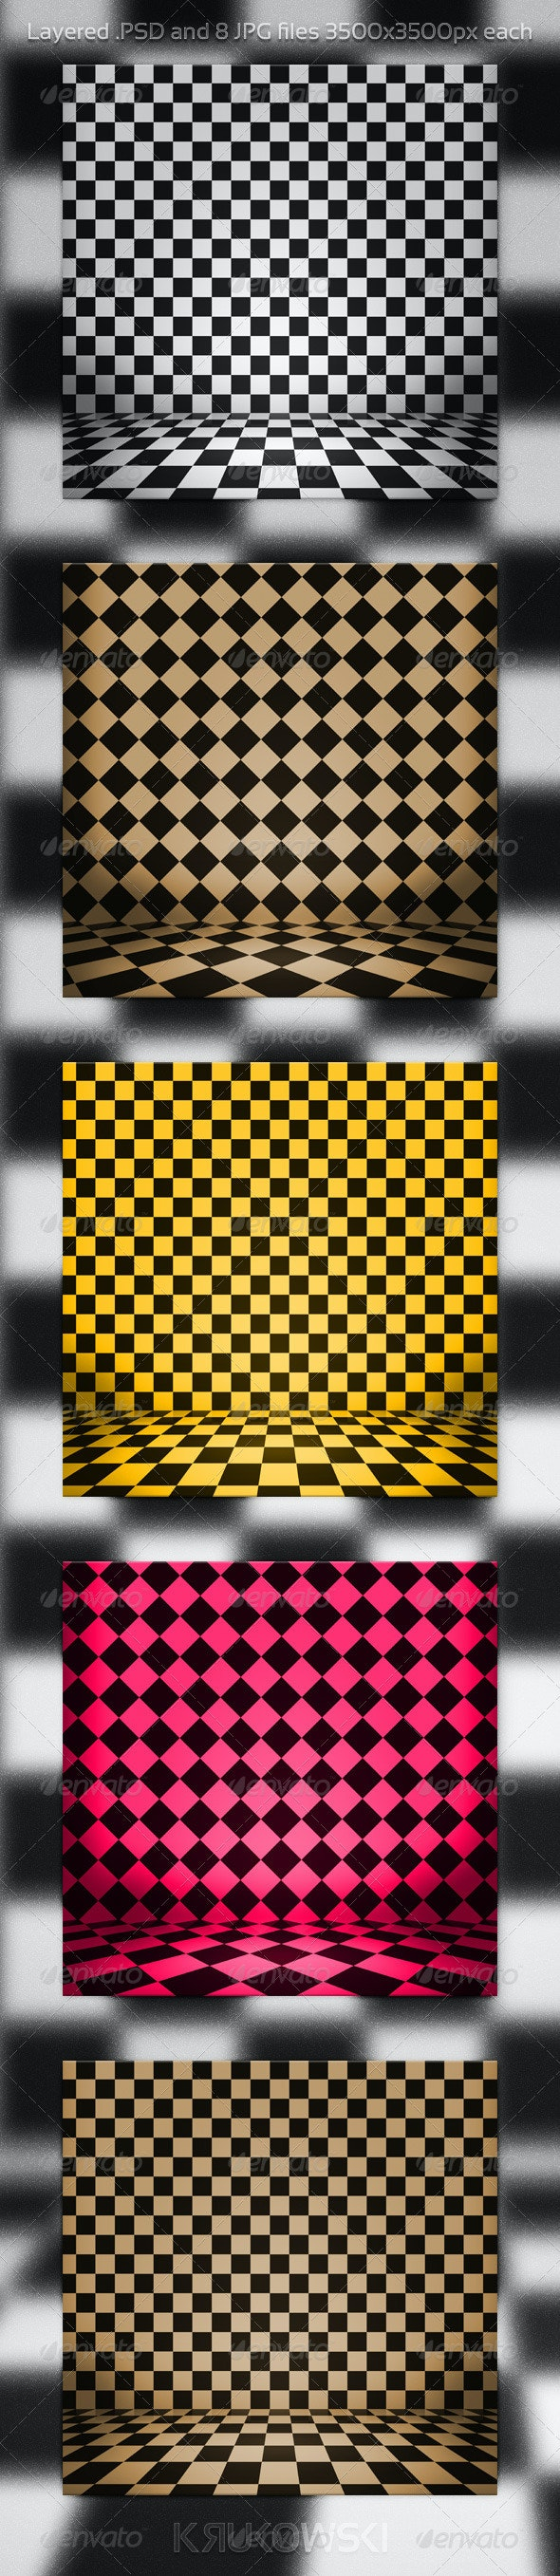 Checkerboard PSD Background - 3D Backgrounds